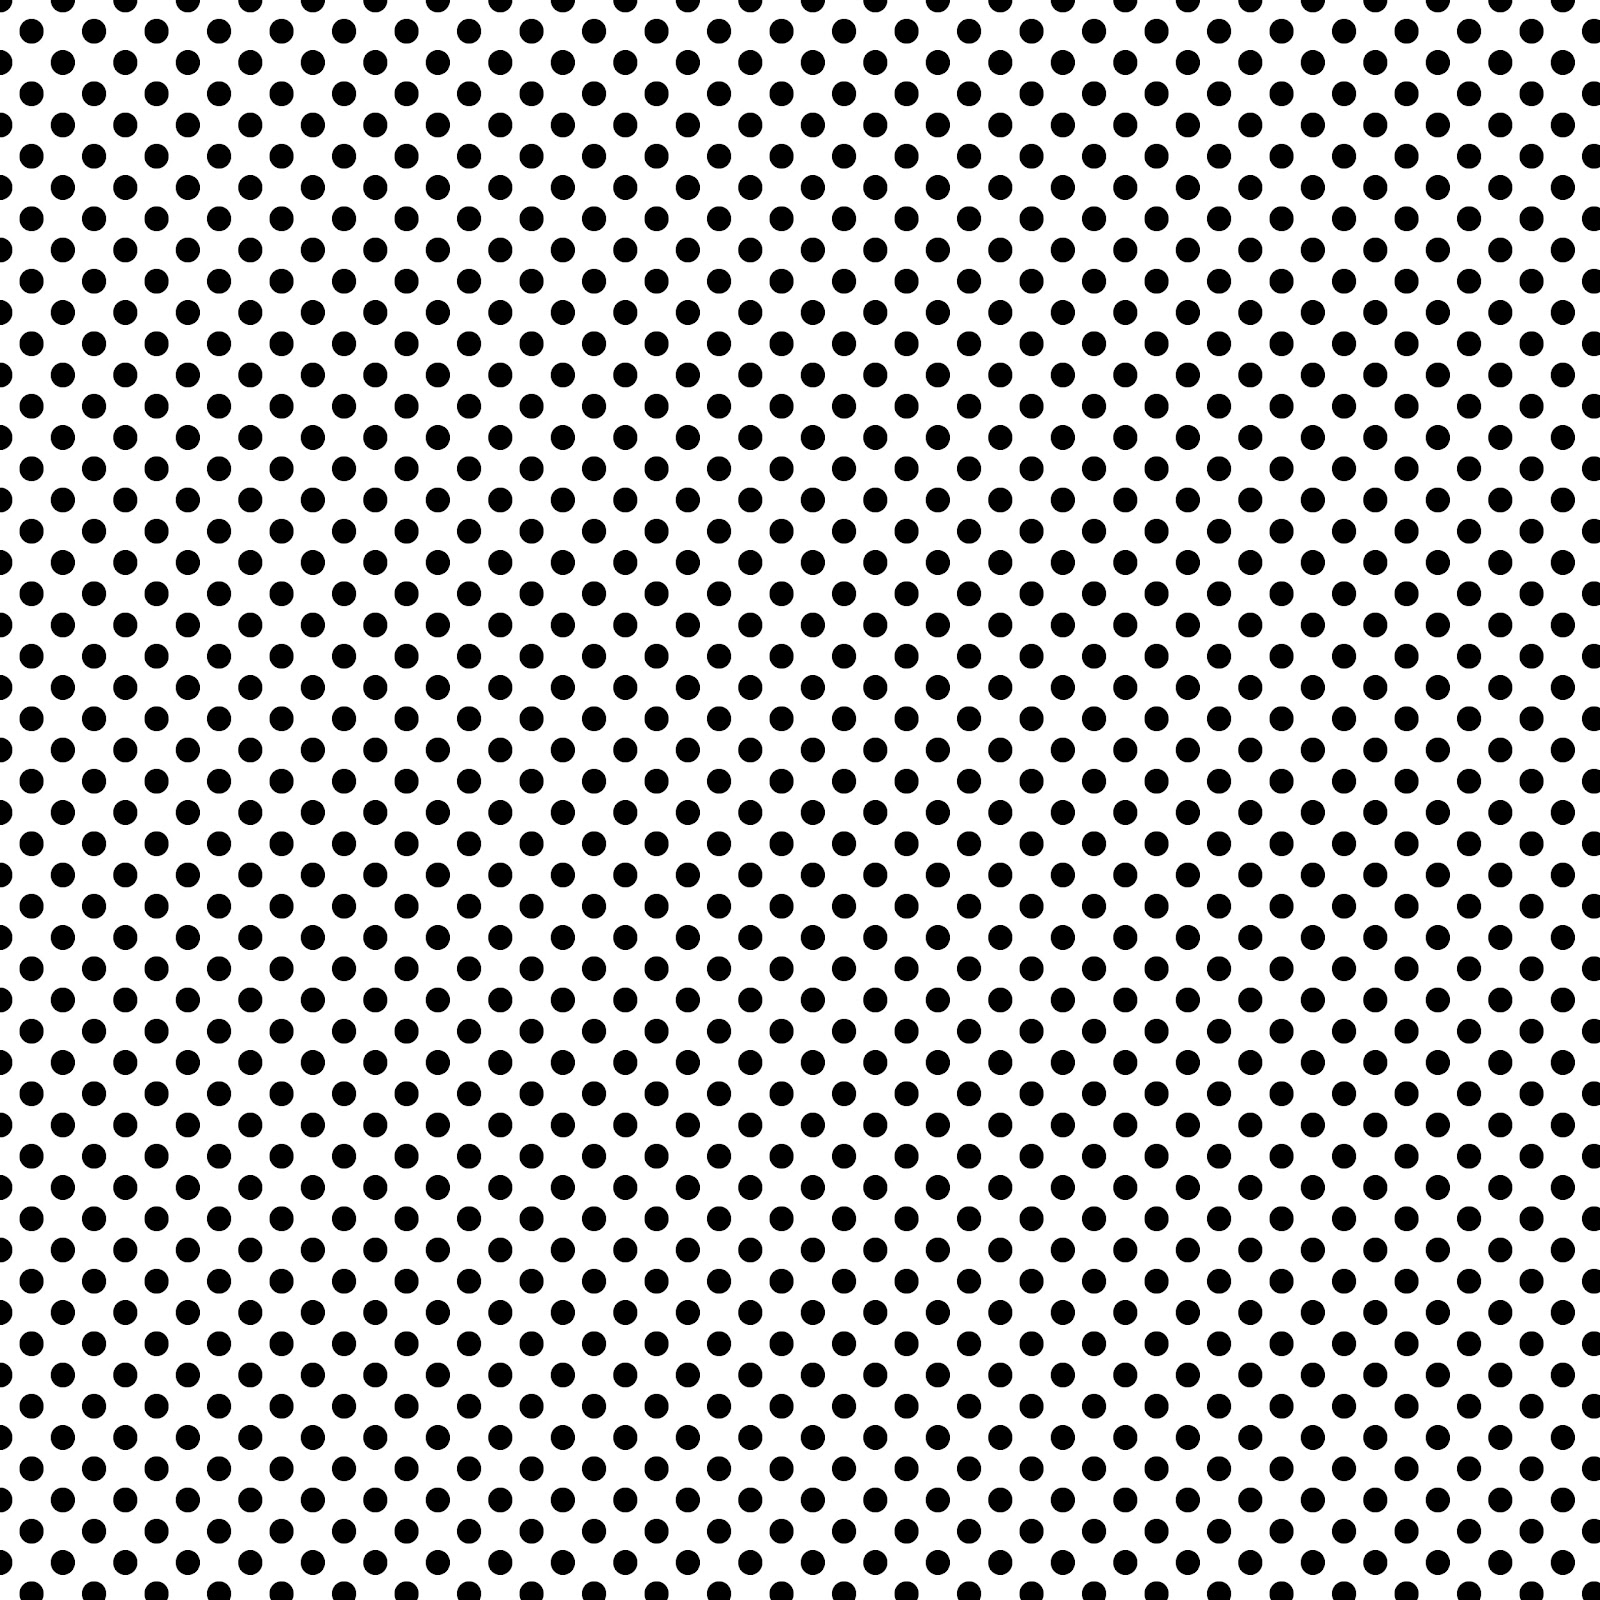 free digital backgrounds, scrapbook paper, black and white, spots.